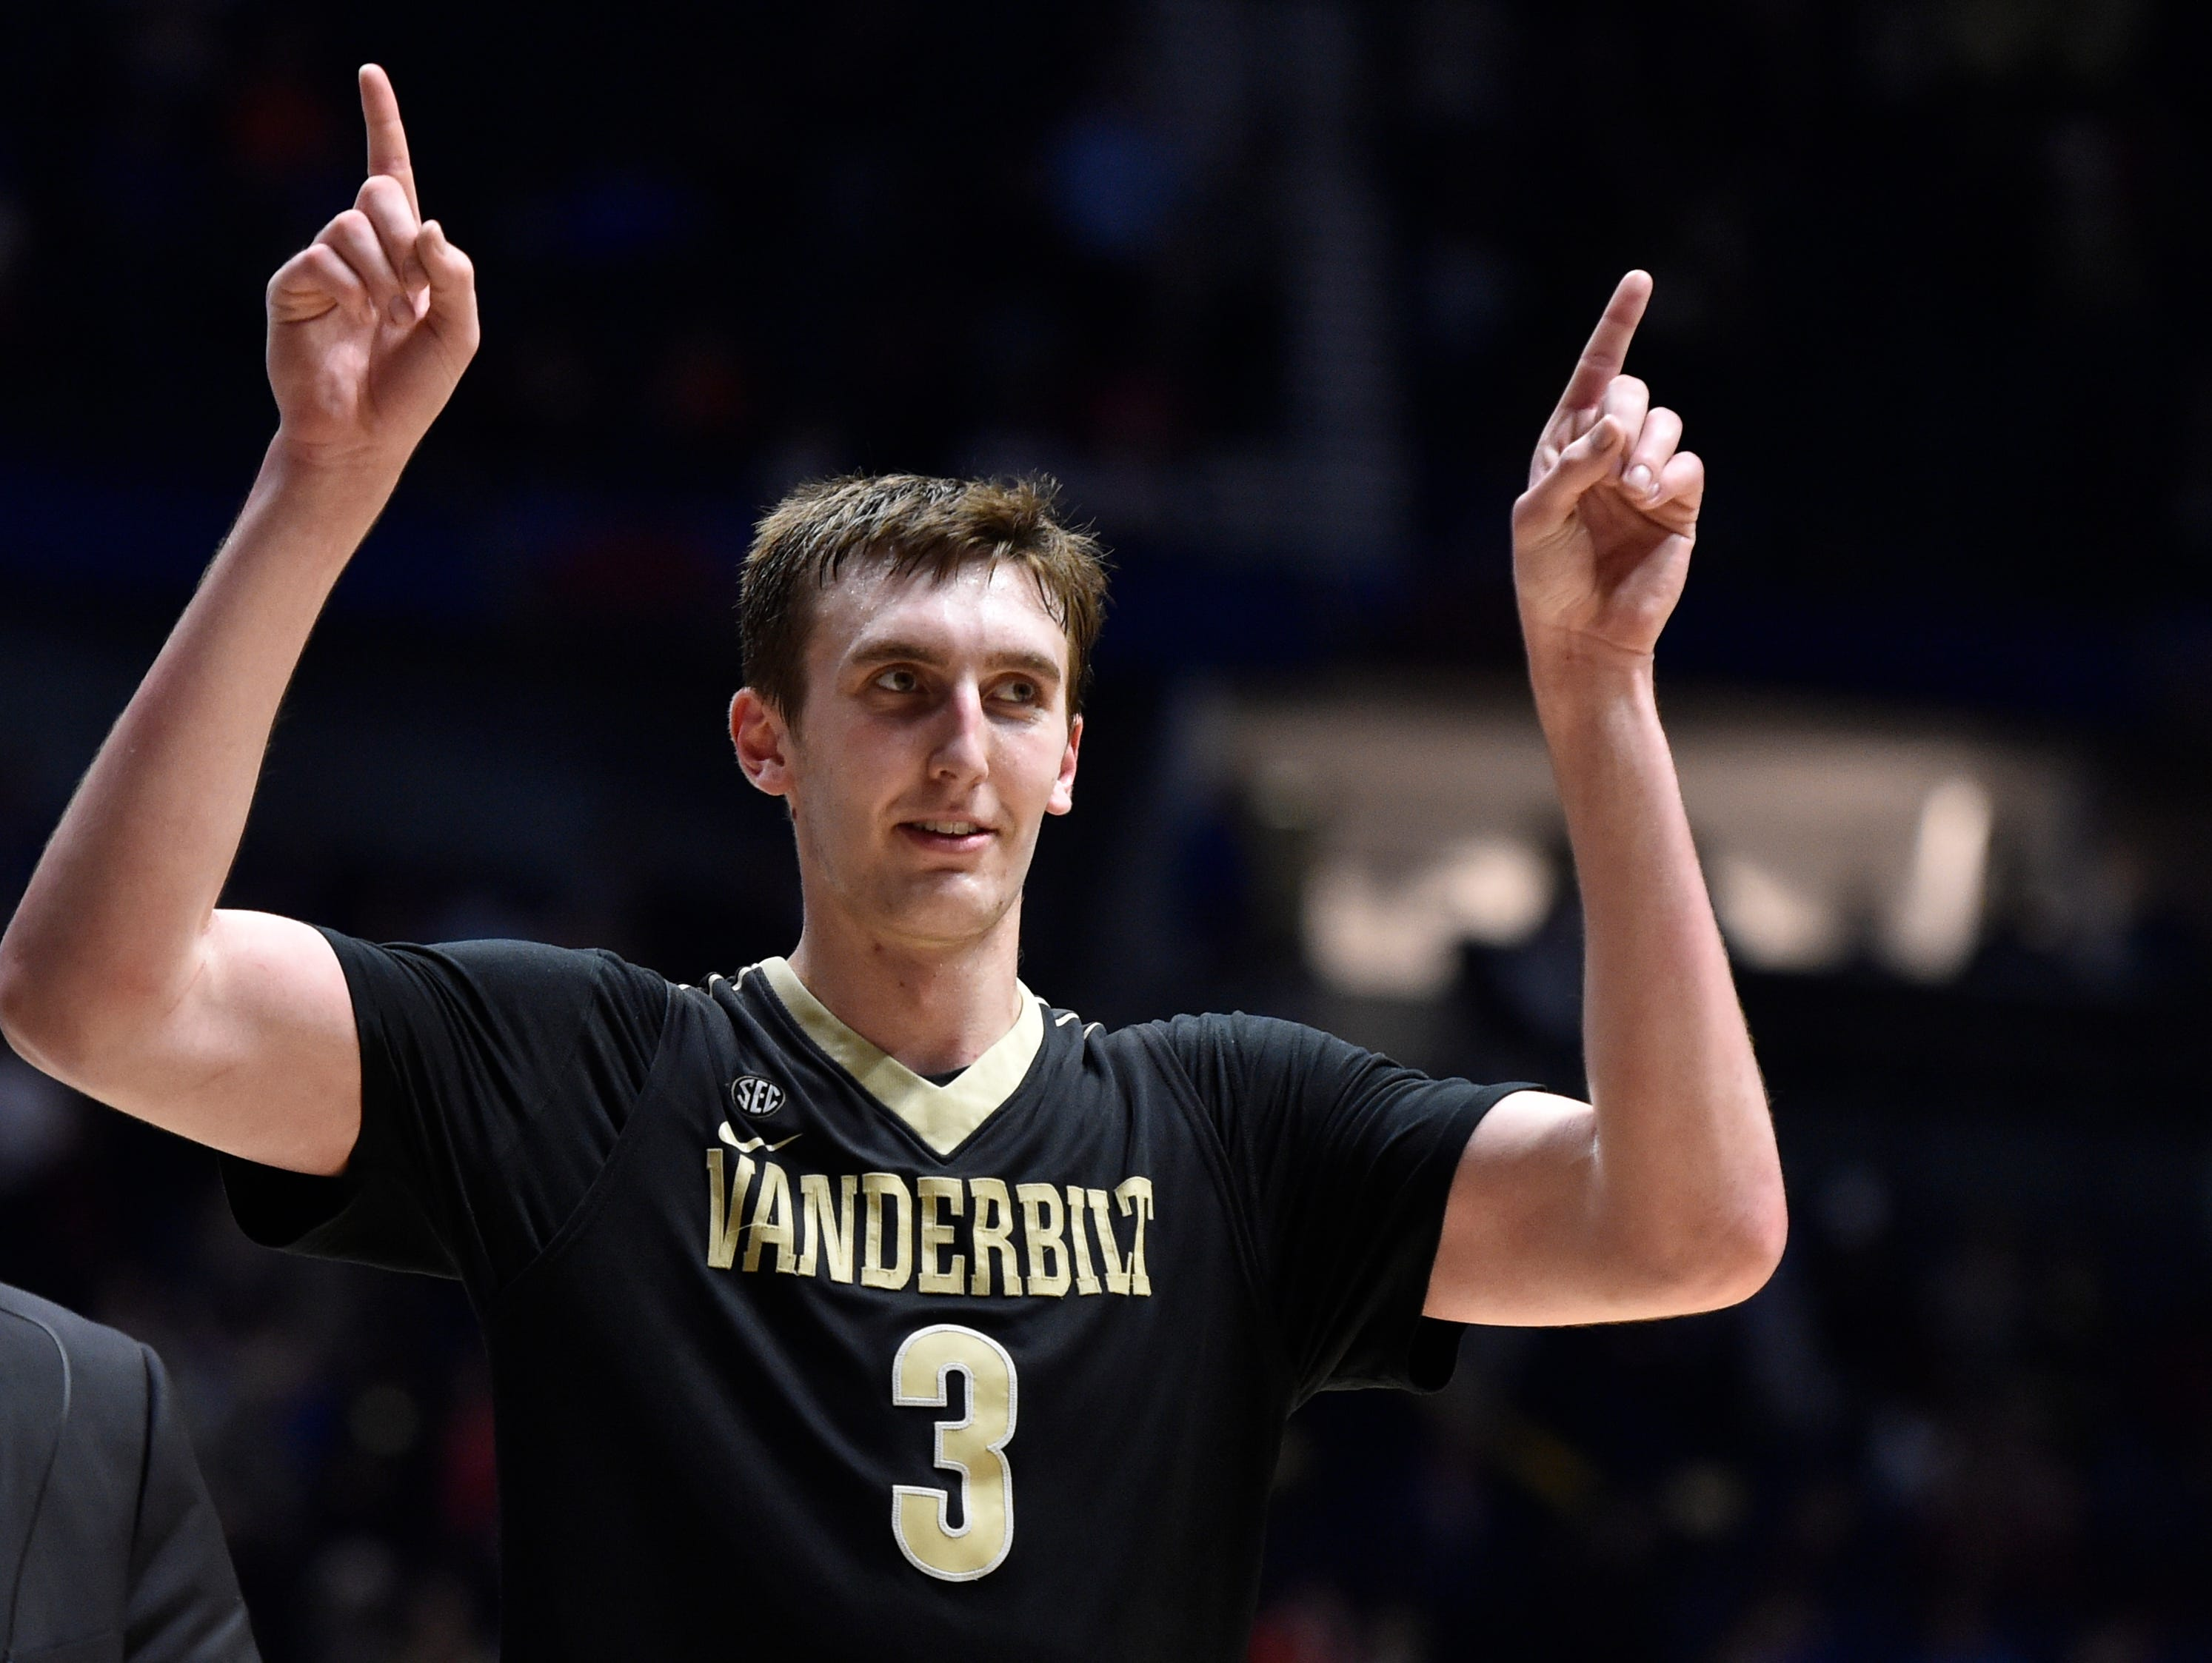 Vanderbilt Commodores forward Luke Kornet (3) celebrates winning their game against Florida in the 2017 SEC Men's Basketball Tournament at Bridgestone Arena Friday, March 10, 2017 in Nashville, Tenn.